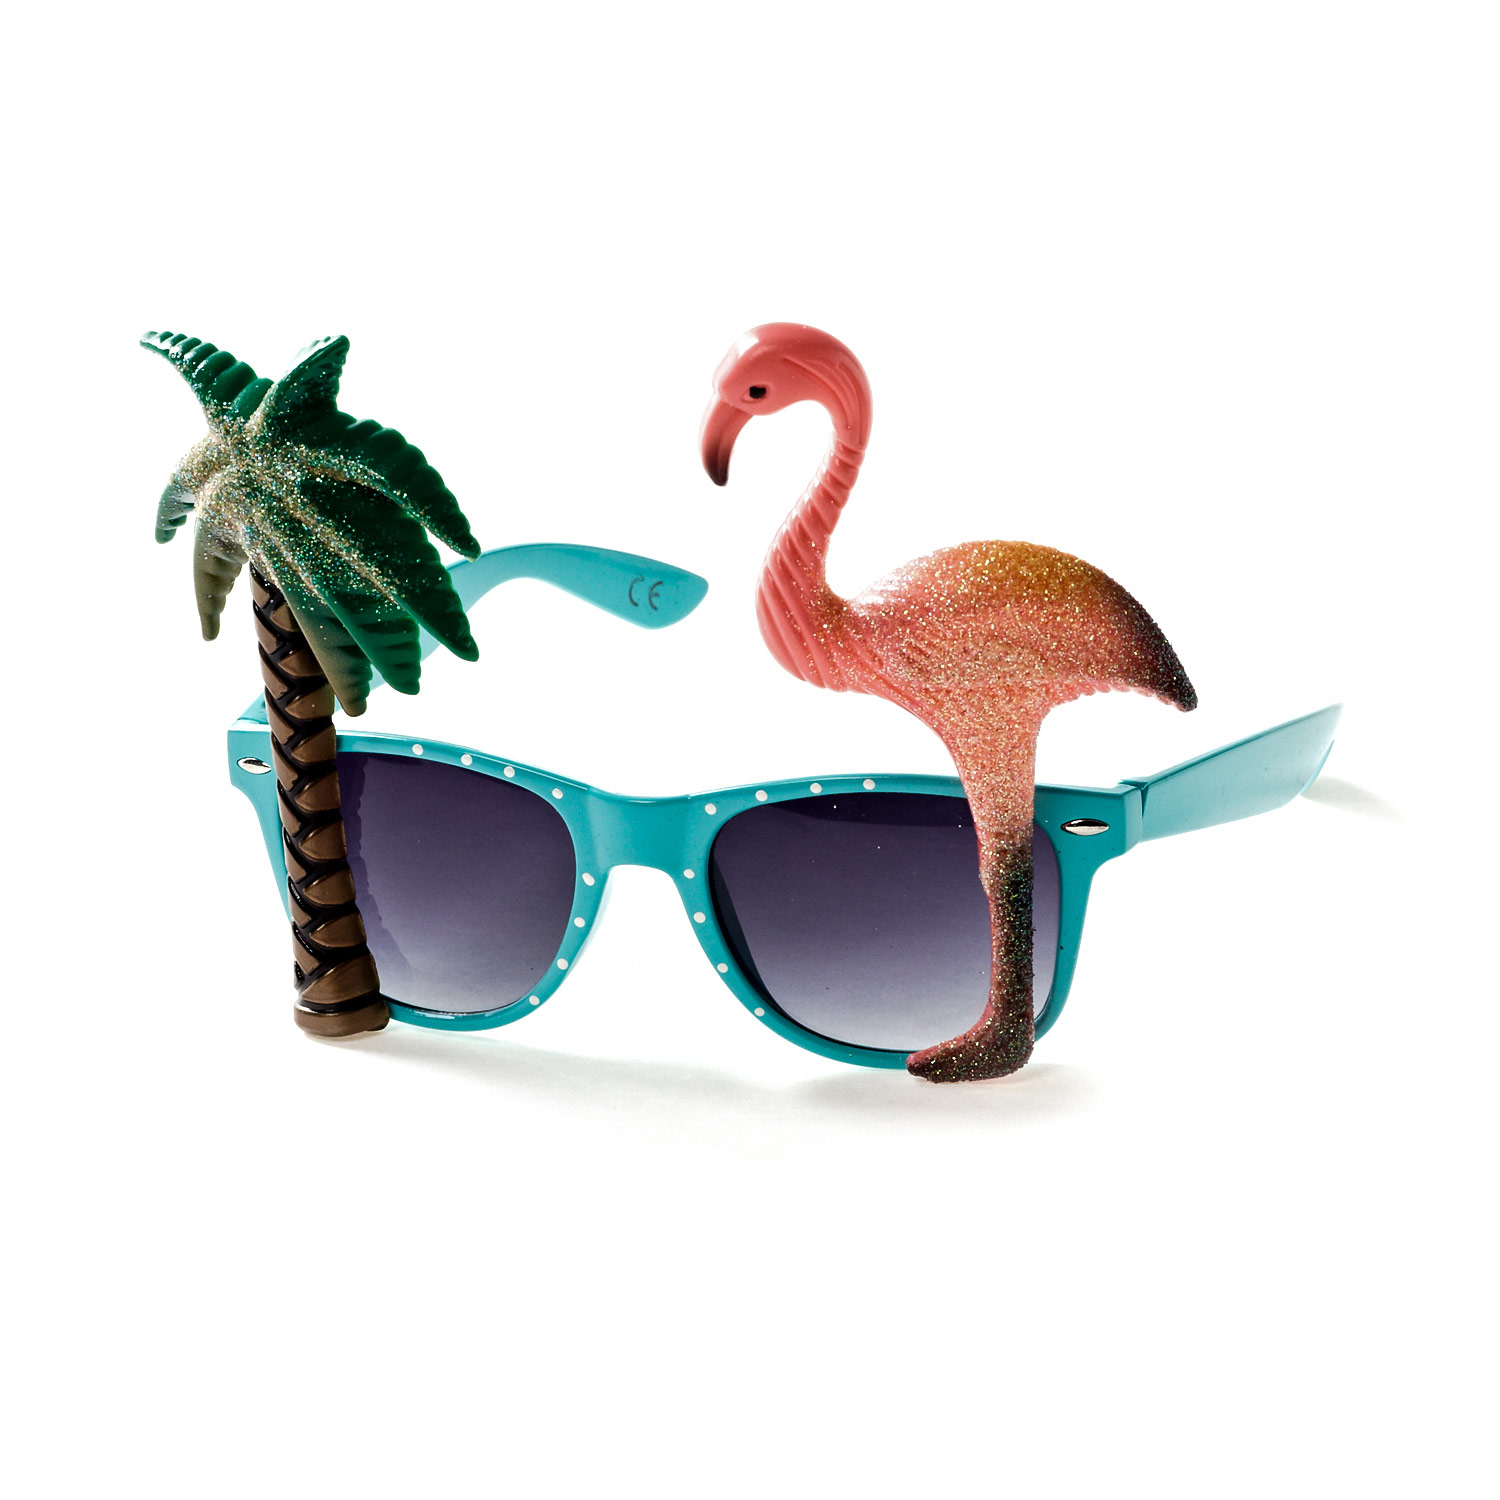 Palm Tree and Flamingo Sunglasses